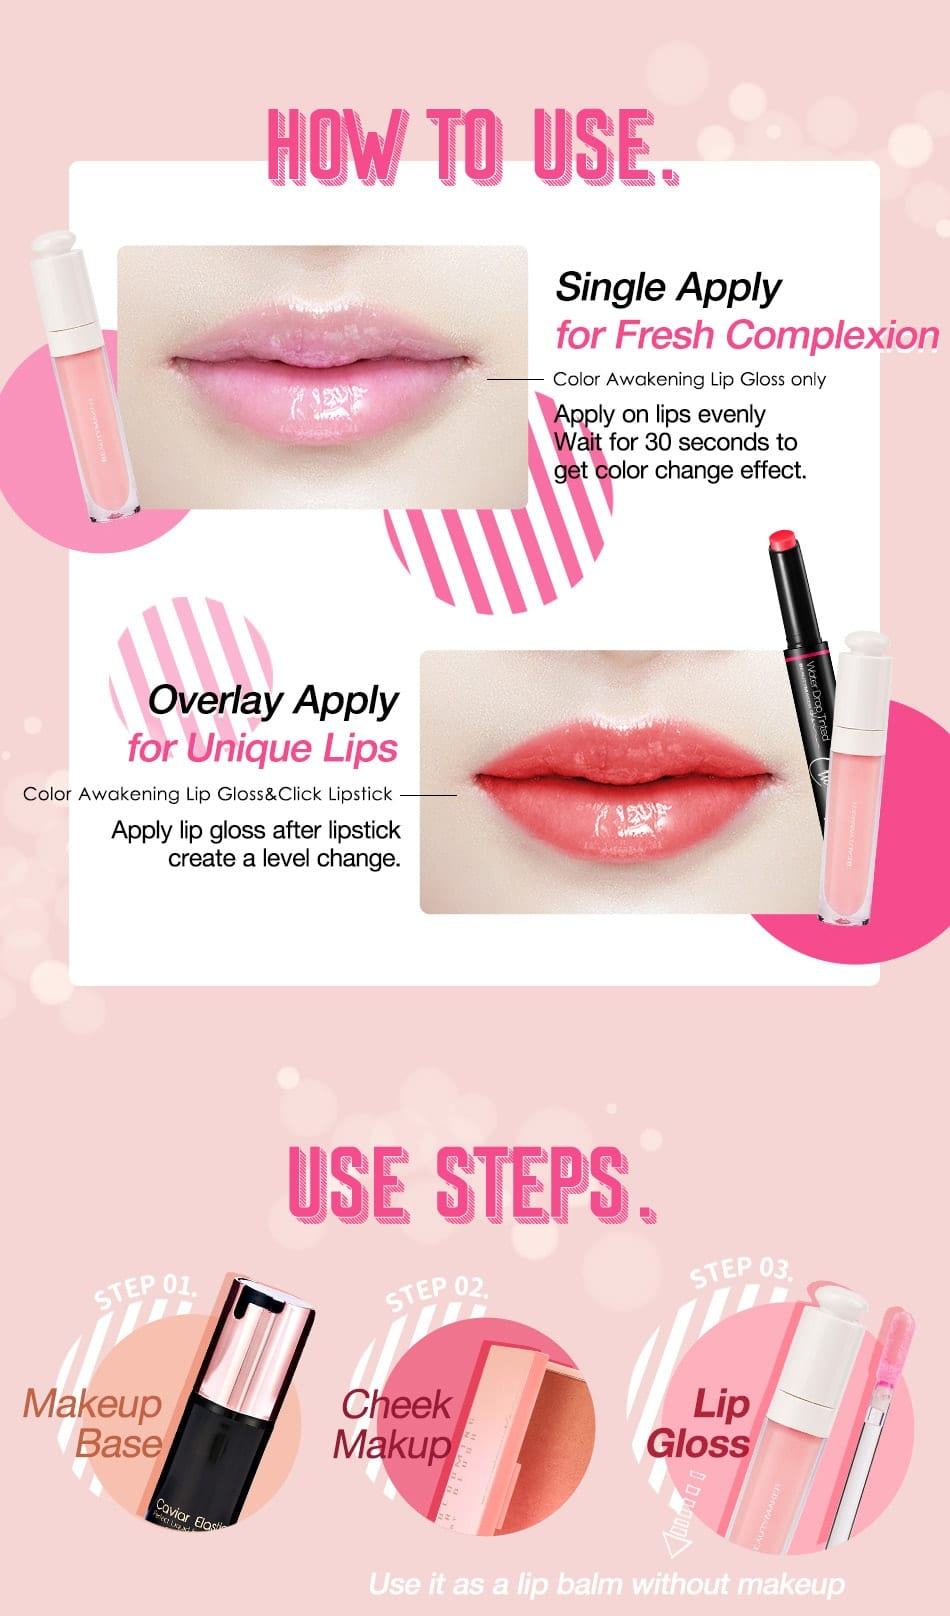 Color Awakening Lip Gloss - How to use